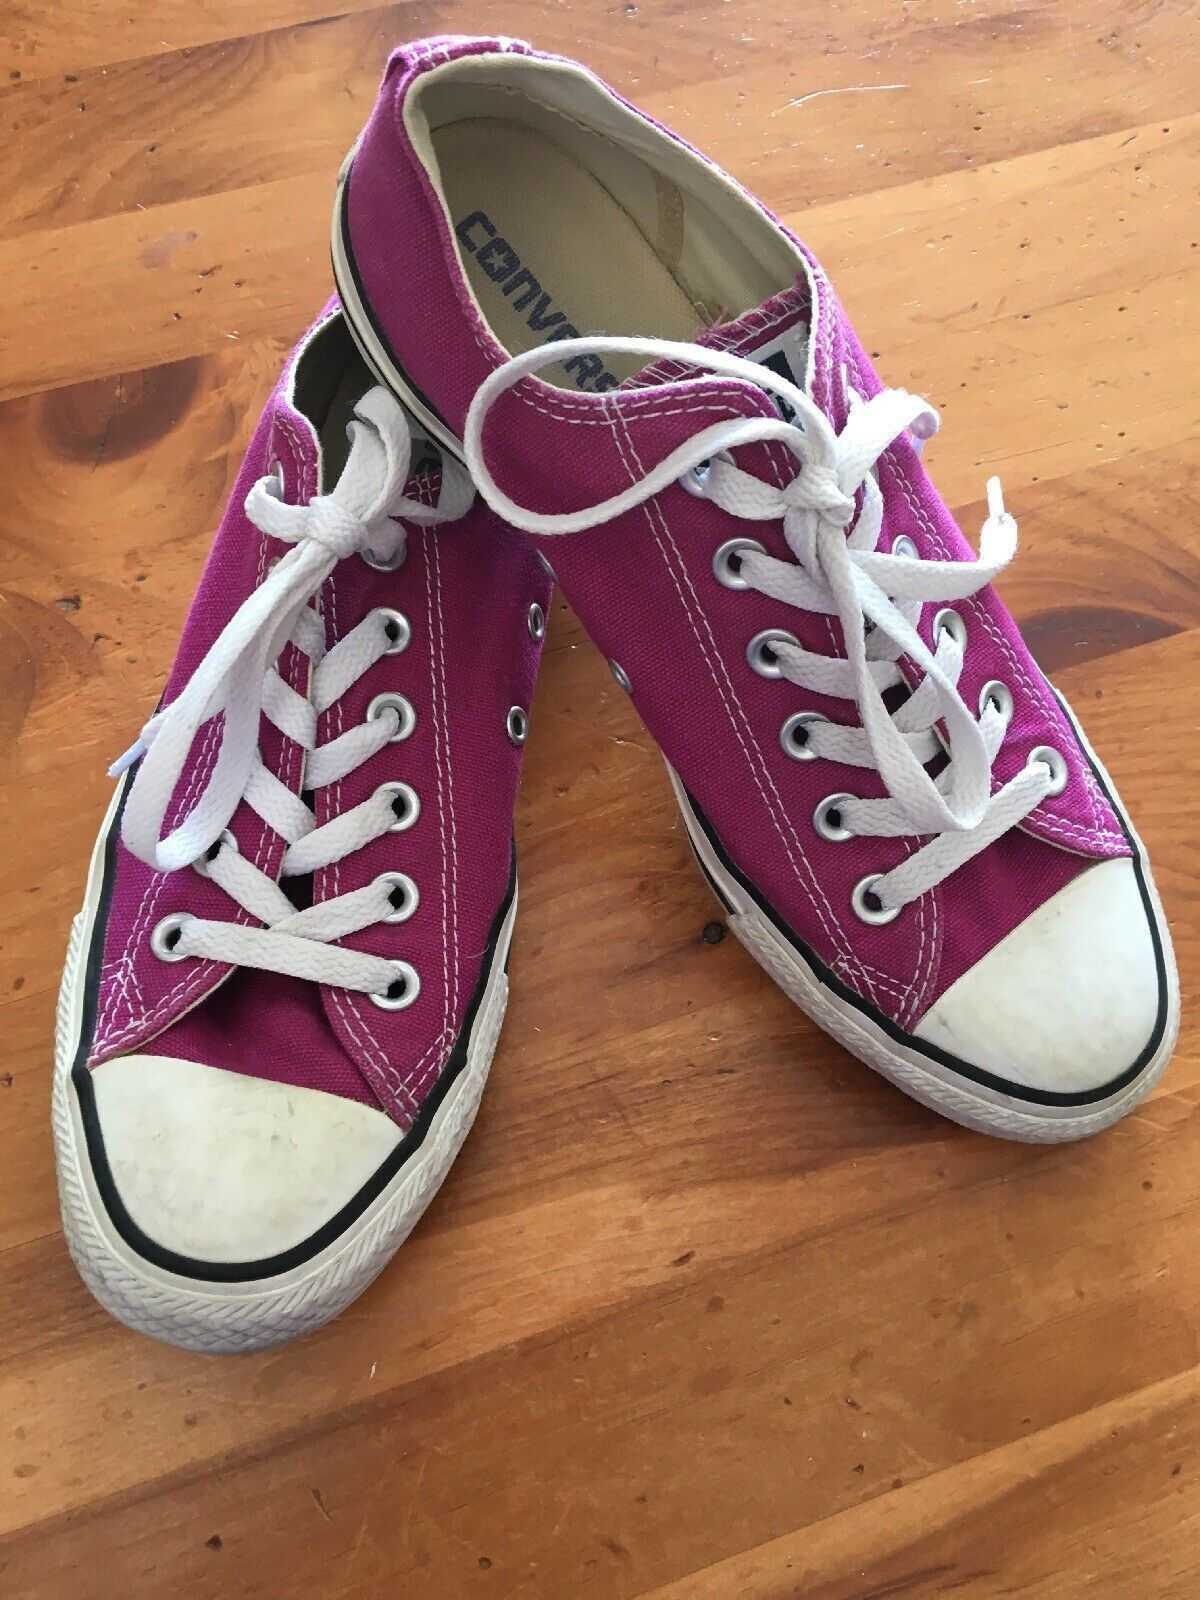 Primary image for Converse All Stars Low Tops Size 6 women's 8 Hot Pink Fuchsia Tennis Shoes